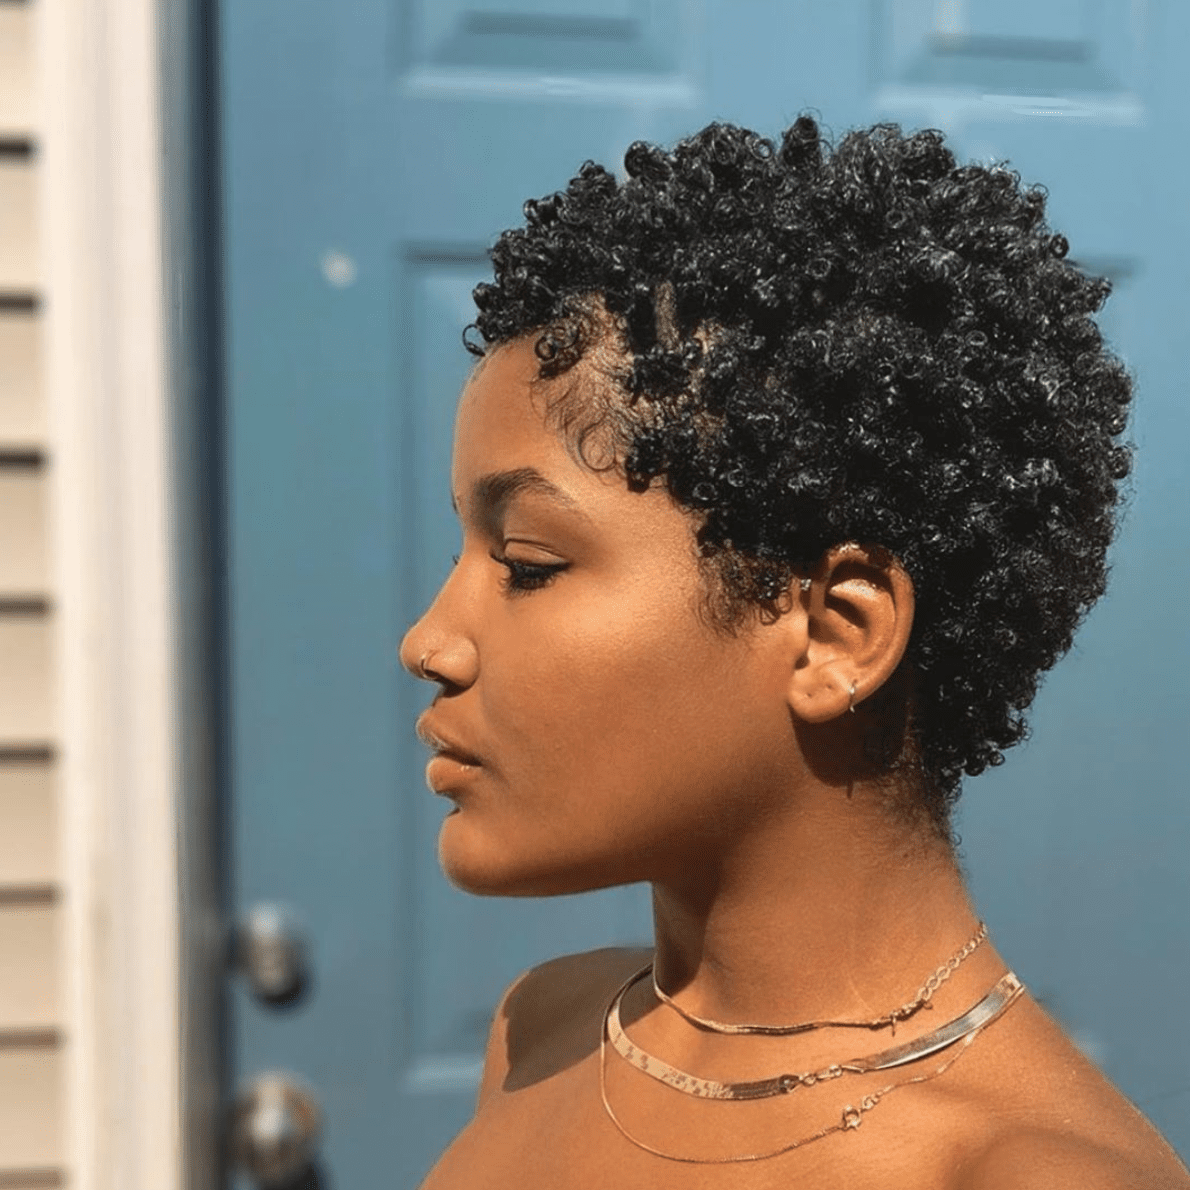 How To Use A Hair Sponge For Short Natural Hair